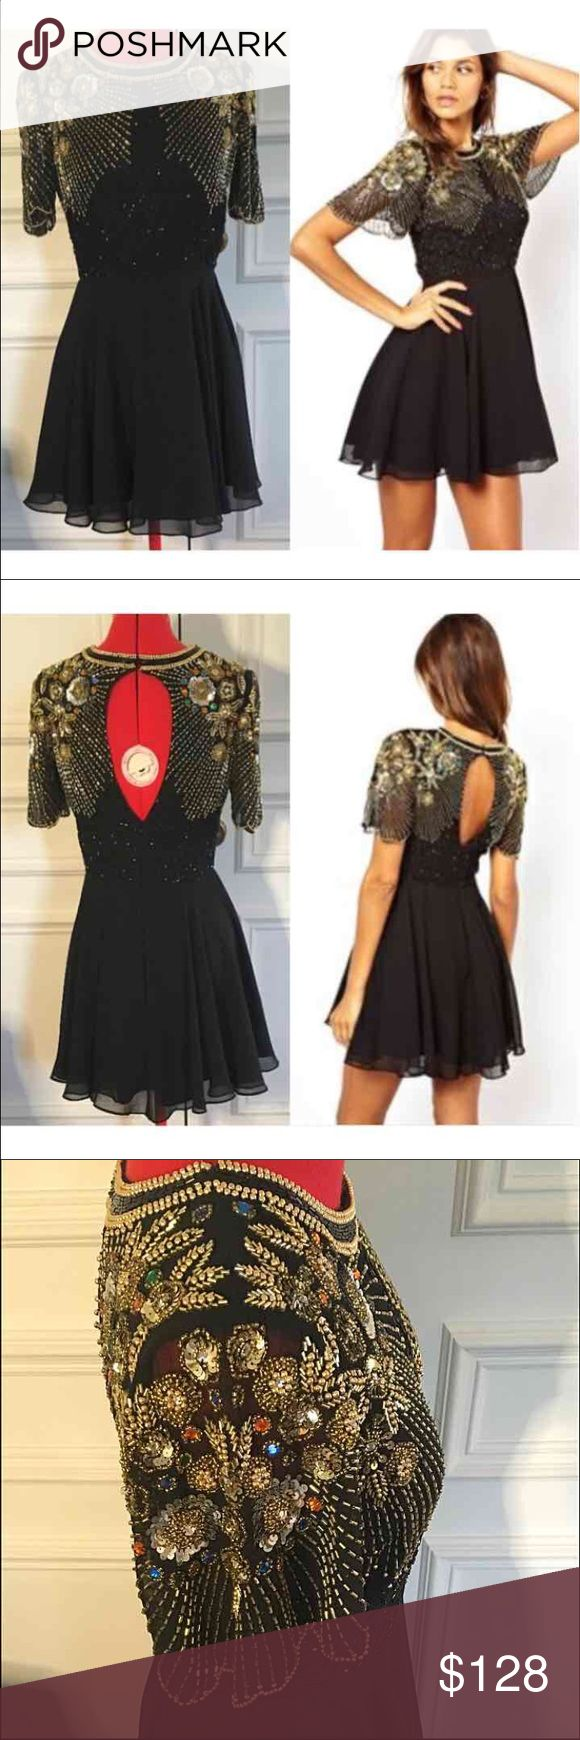 NWT hand beaded VL skater dress Gorgeous Onyx skater dress by designer Virgo's Lounge. Purchased from ASOS.com Beautifully hand beaded intricate gold/multicolored design  Super figure flattering silhouette Never worn, NEW WITH TAG! UK size 10, which translates to a Small $166 original price ASOS Dresses Mini